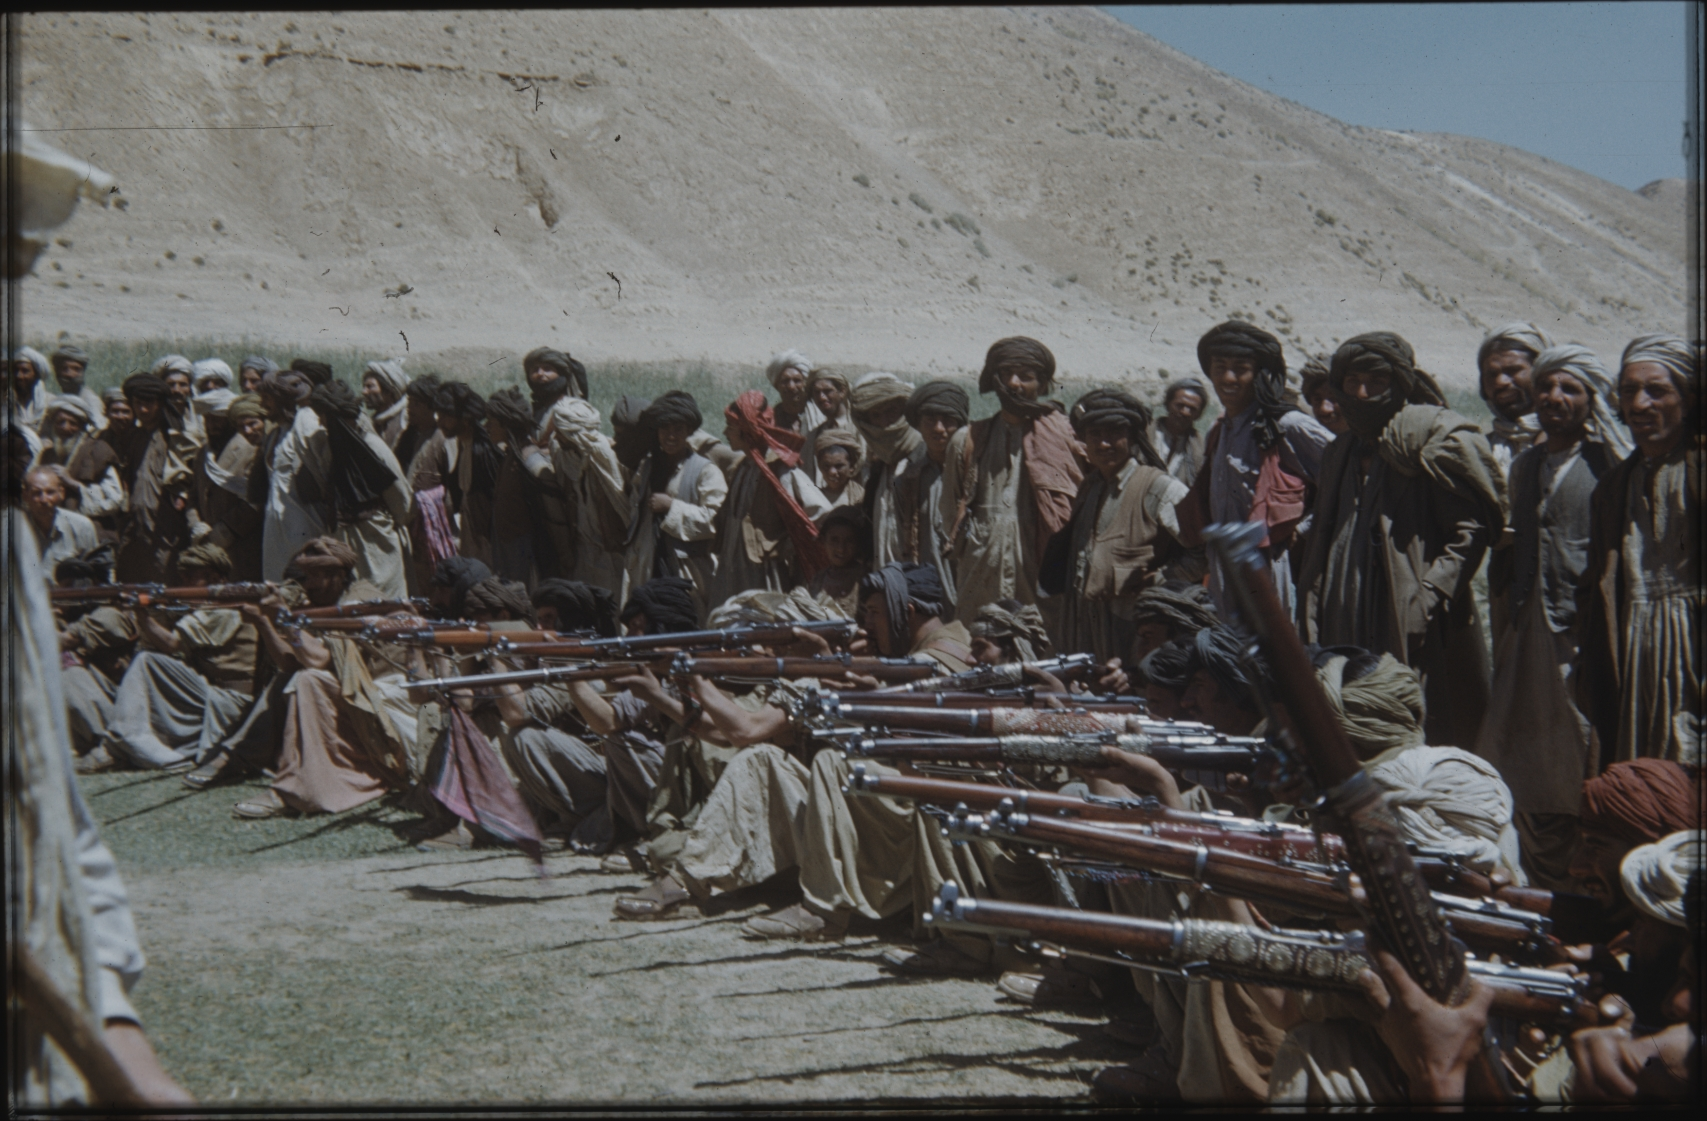 A nomad must be able to defend himself and his family. Thus, he is usually armed. Here a shooting performance at the nomad bazaar. The Henning Haslund-Christensen Memorial Expedition, 1953-'55. Photo: the Moesgaard Museum archives